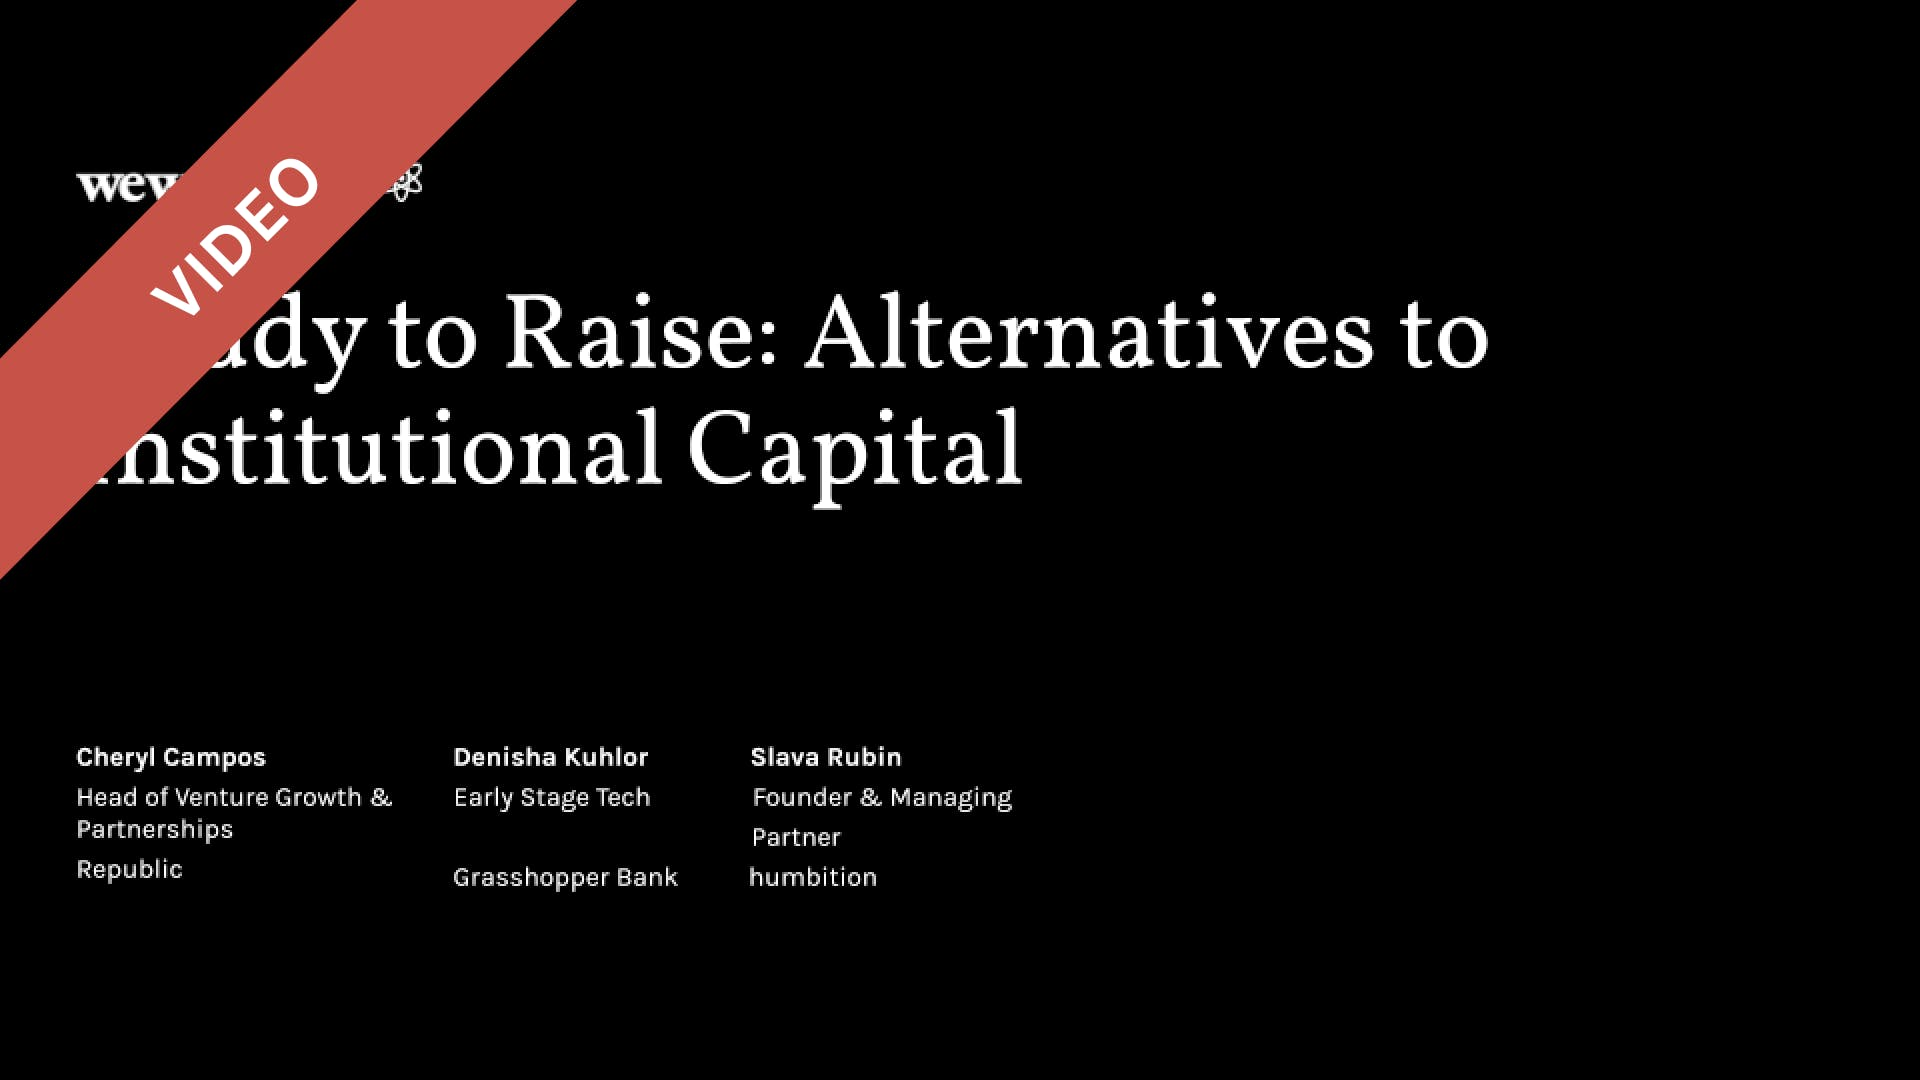 Ready to Raise: Alternatives to Institutional Capital